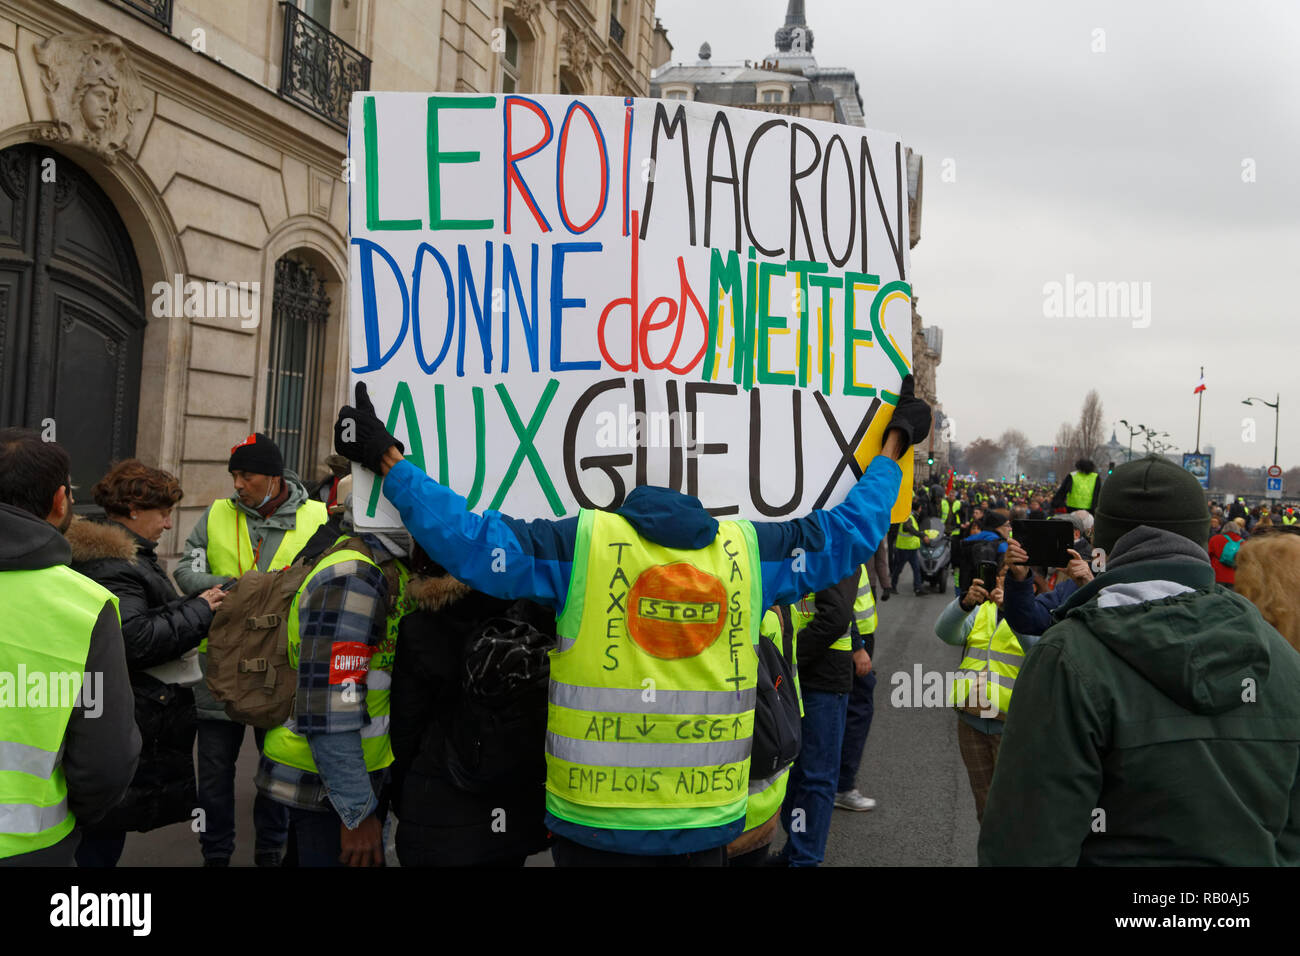 Paris France th Jan Manifestation Of Yellow Vests They Confront The Riot Police On January In Paris France Credit Bernard Menigault Alamy Live News Stock Photo Alamy